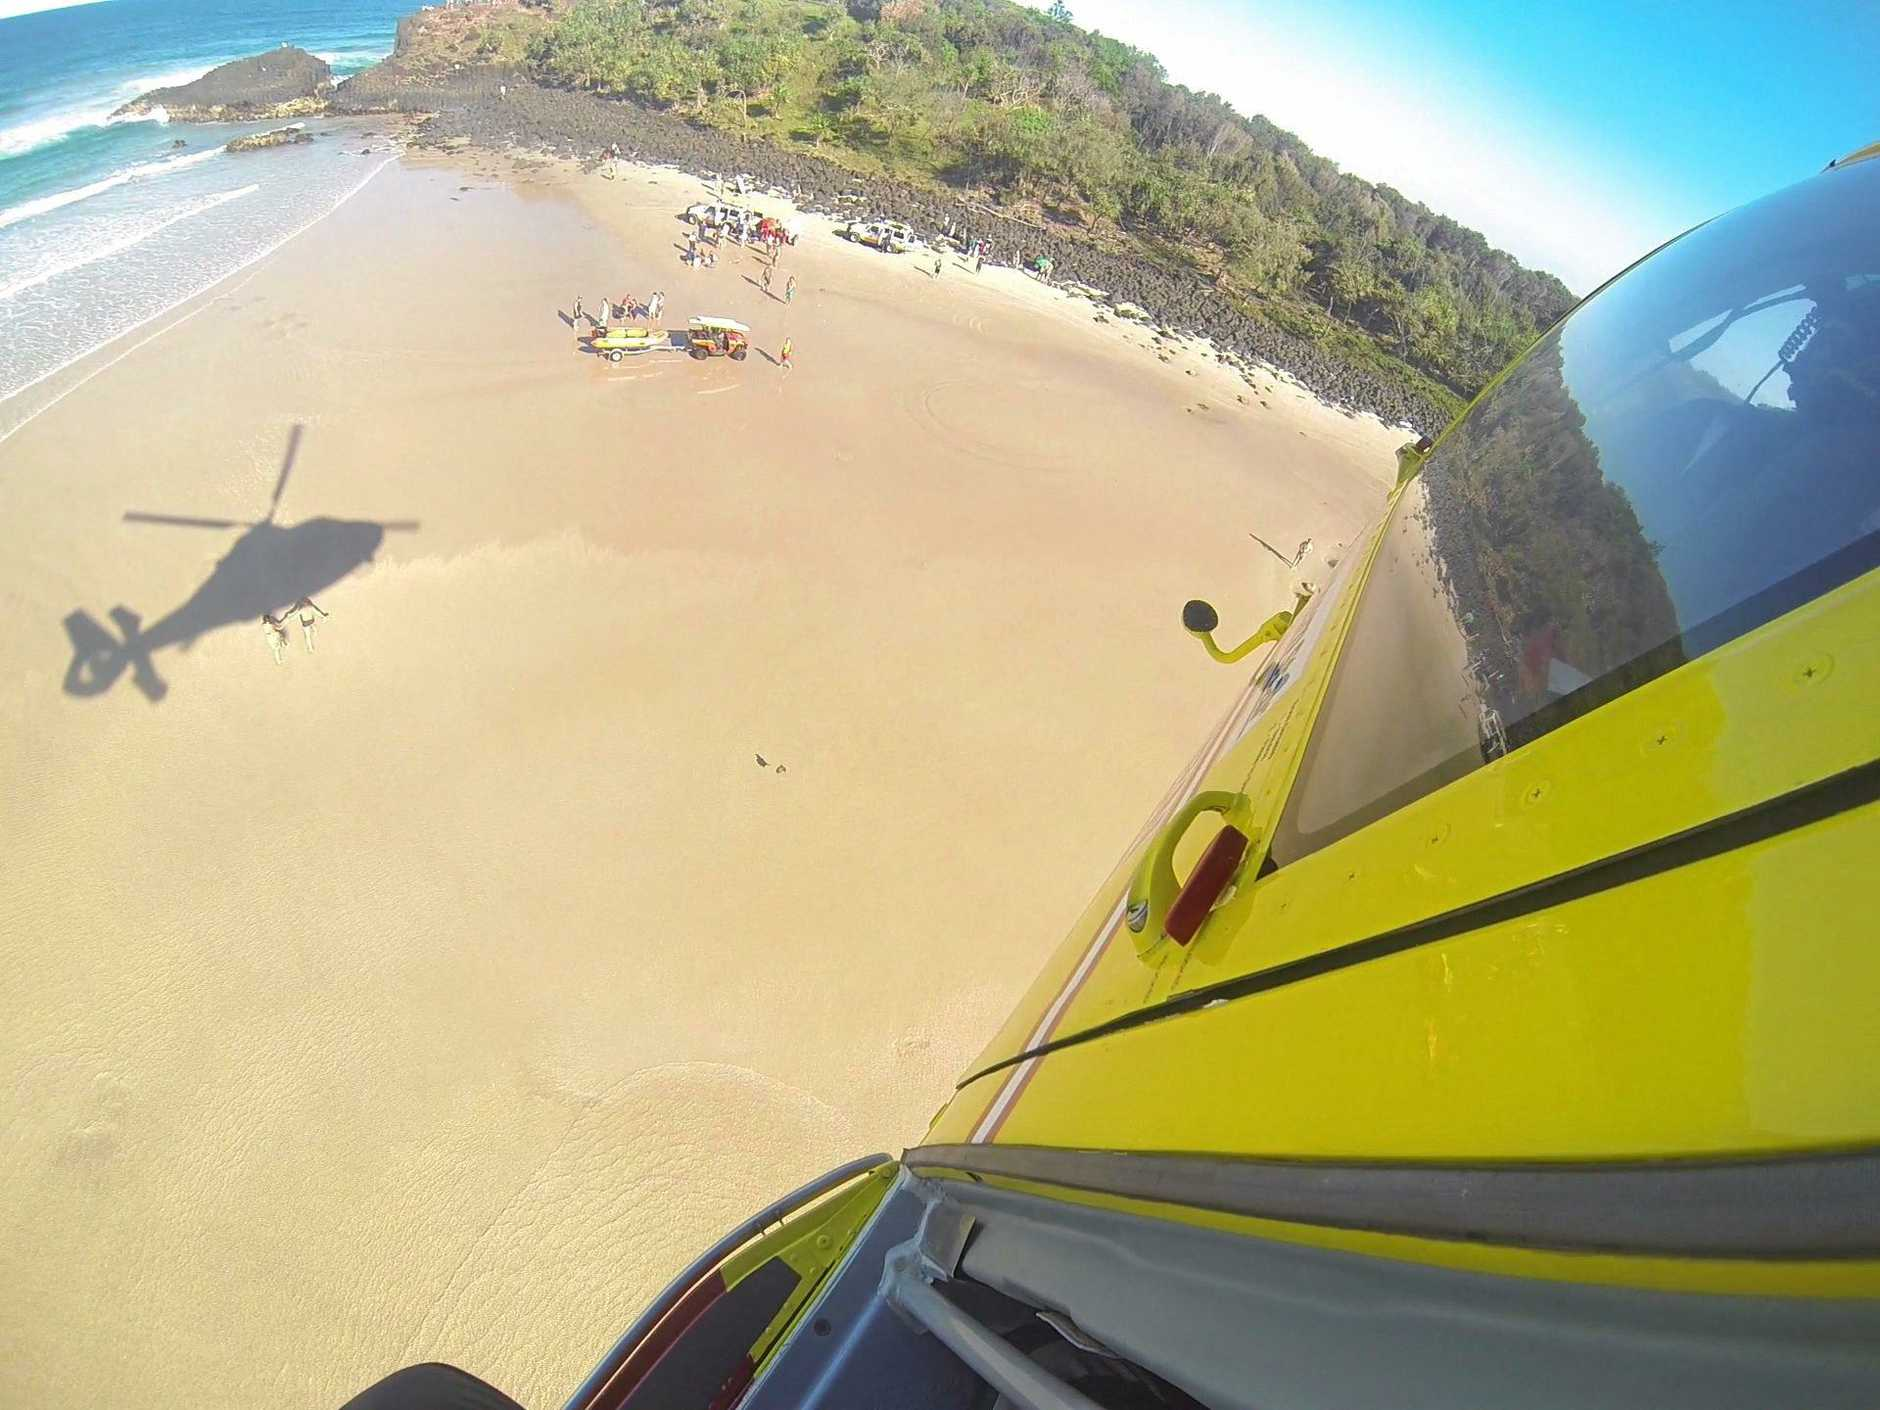 Westpac Life Saver Helicopter attend the scene at Fingal Beach near Tweed Heads. Photo: contributed